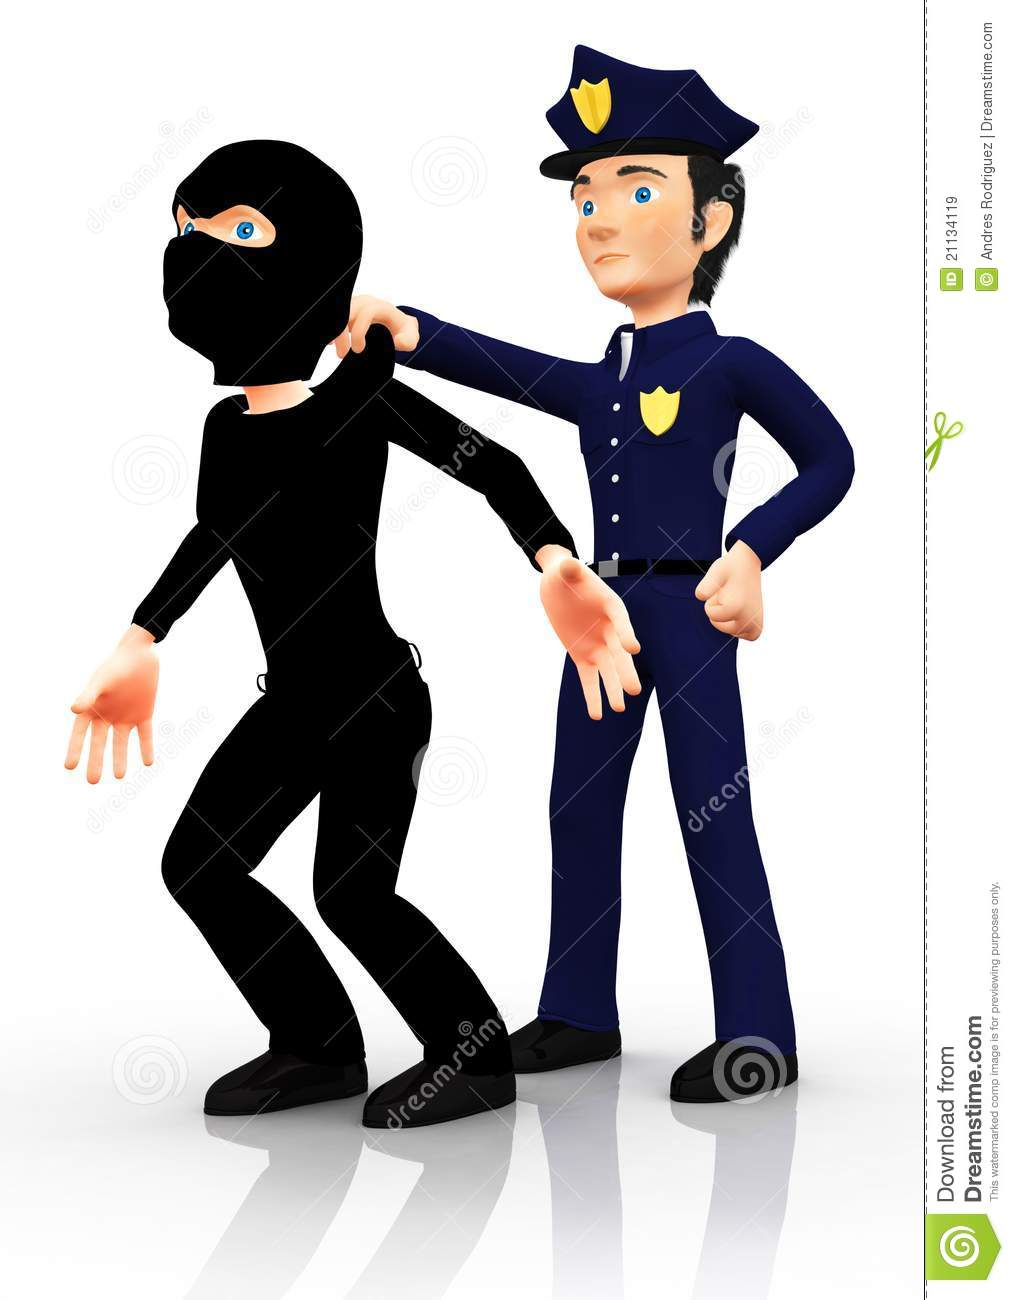 Gallery images and information  Someone Getting Arrested Clipart